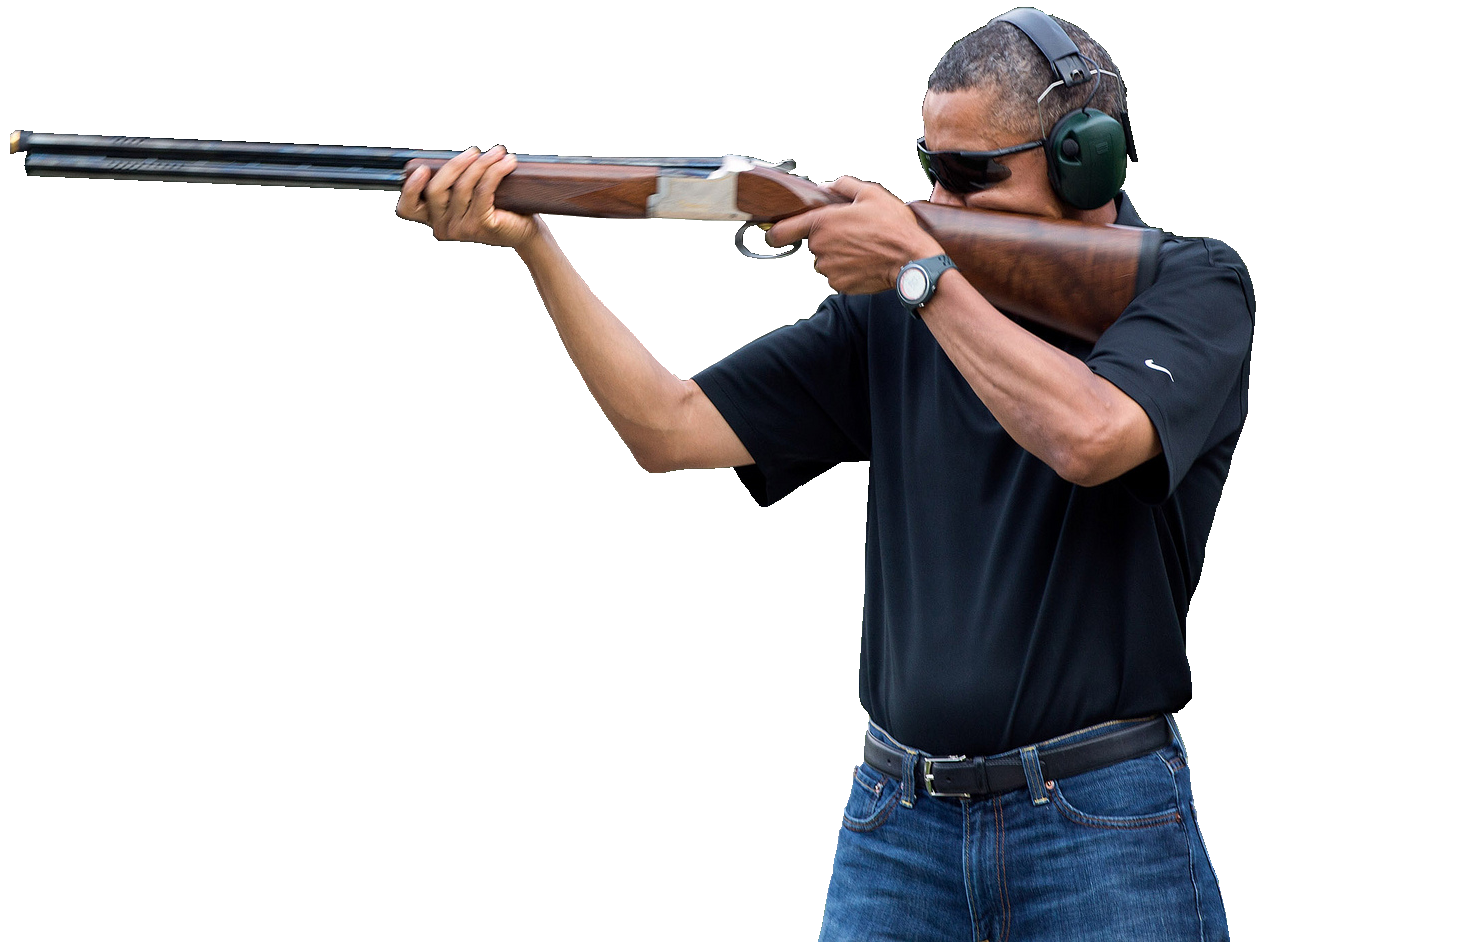 Obama shooting (exploitable)